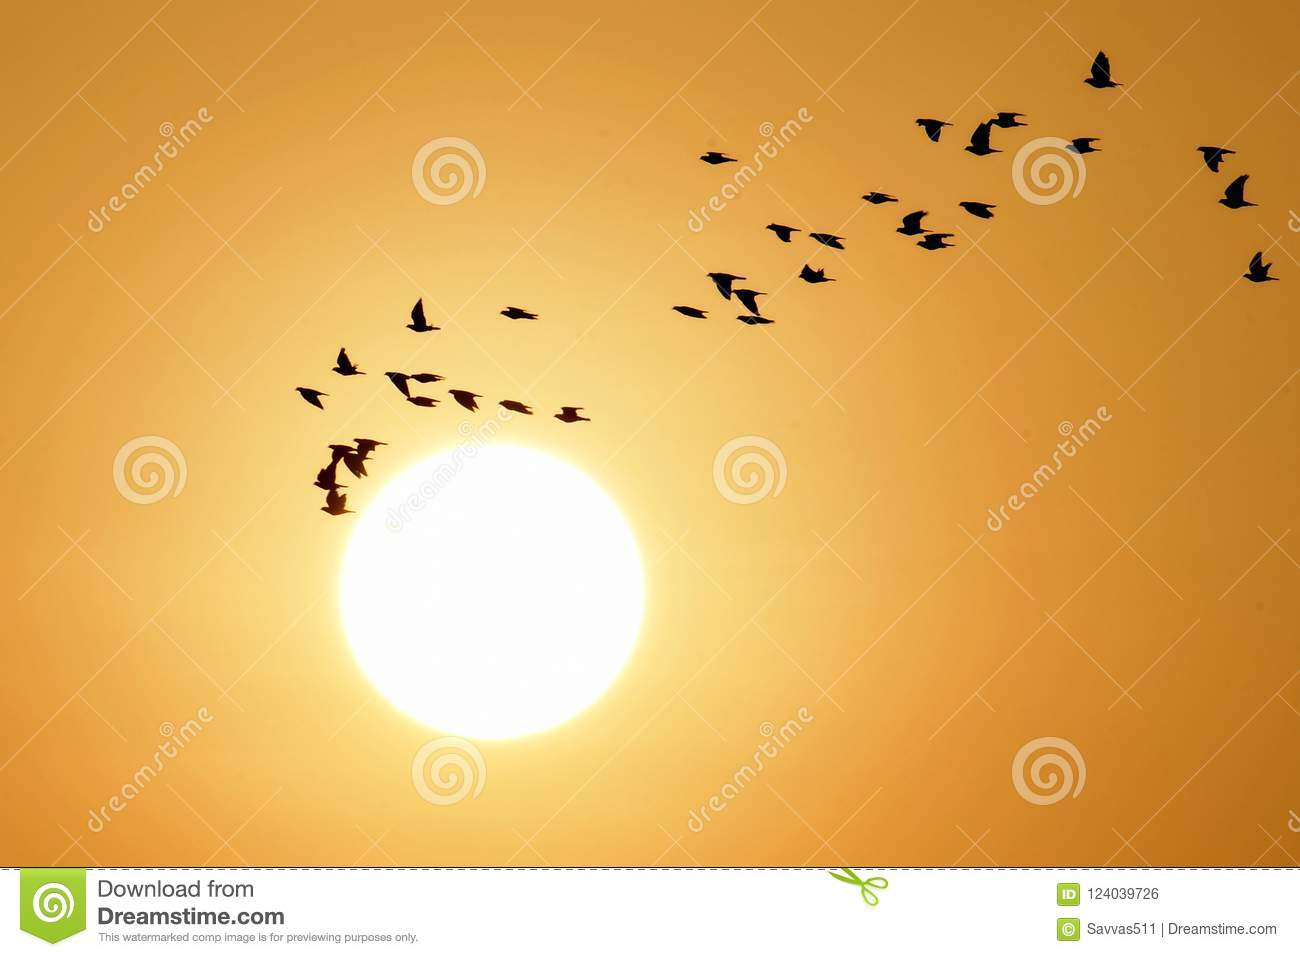 Birds Flying At Sunrise As The Sun Rises Stock Photo - Image of gold ...